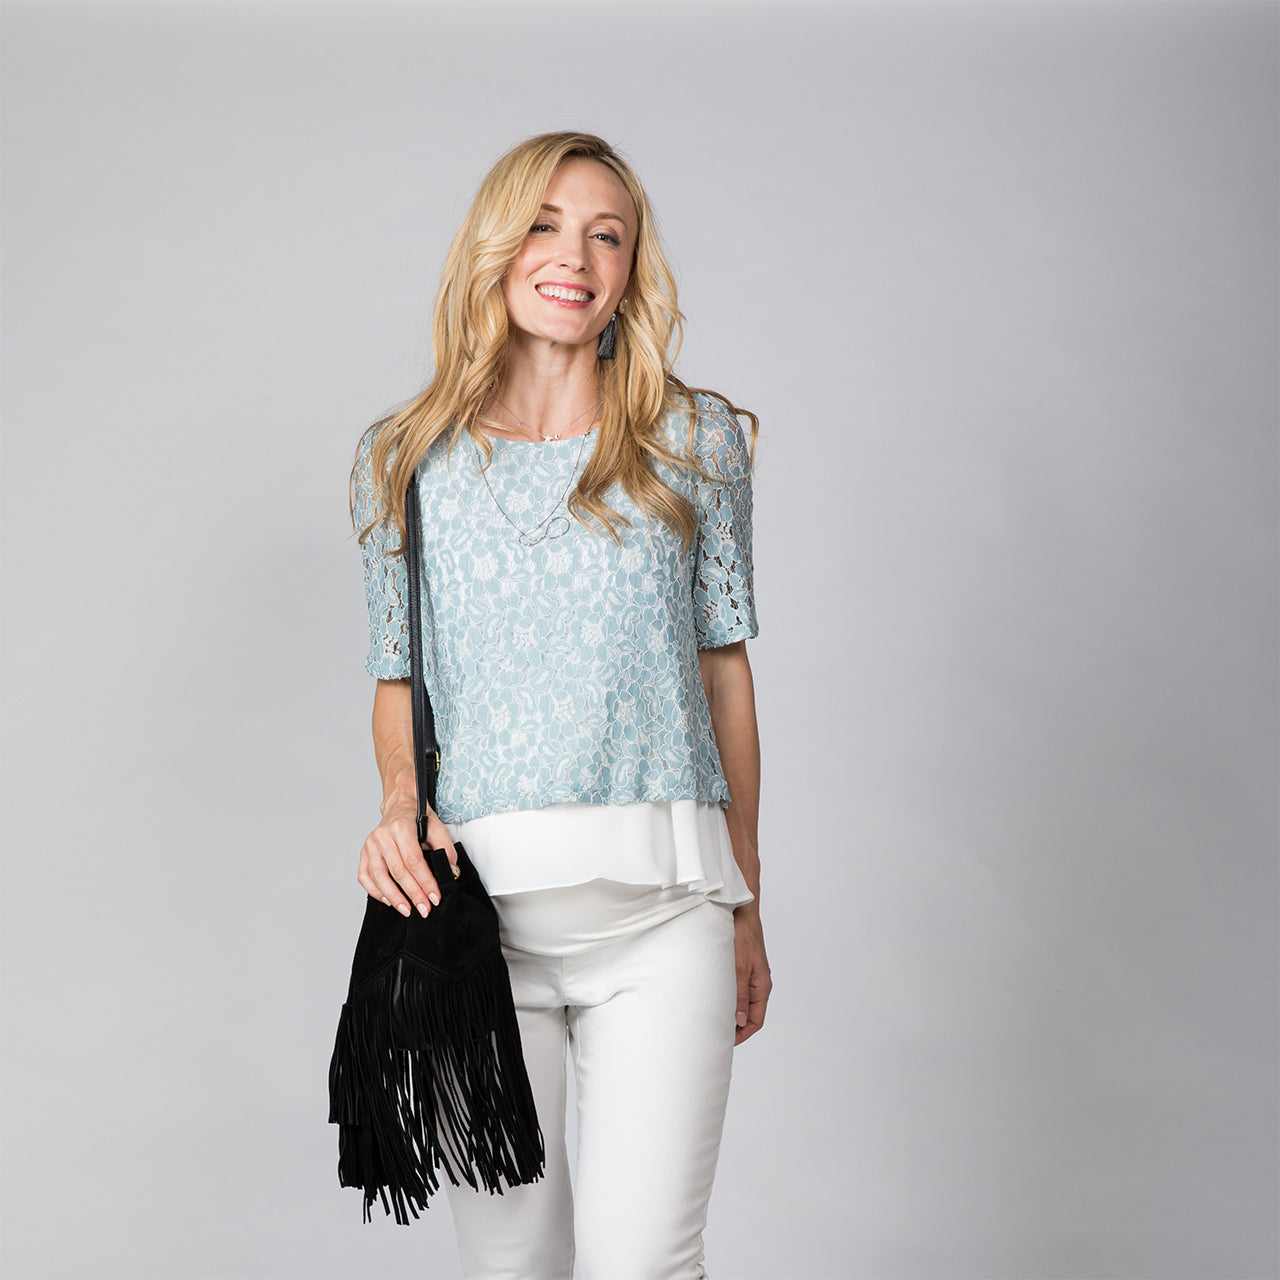 Maternity and Nursing Lace Double Layered Top Blouse